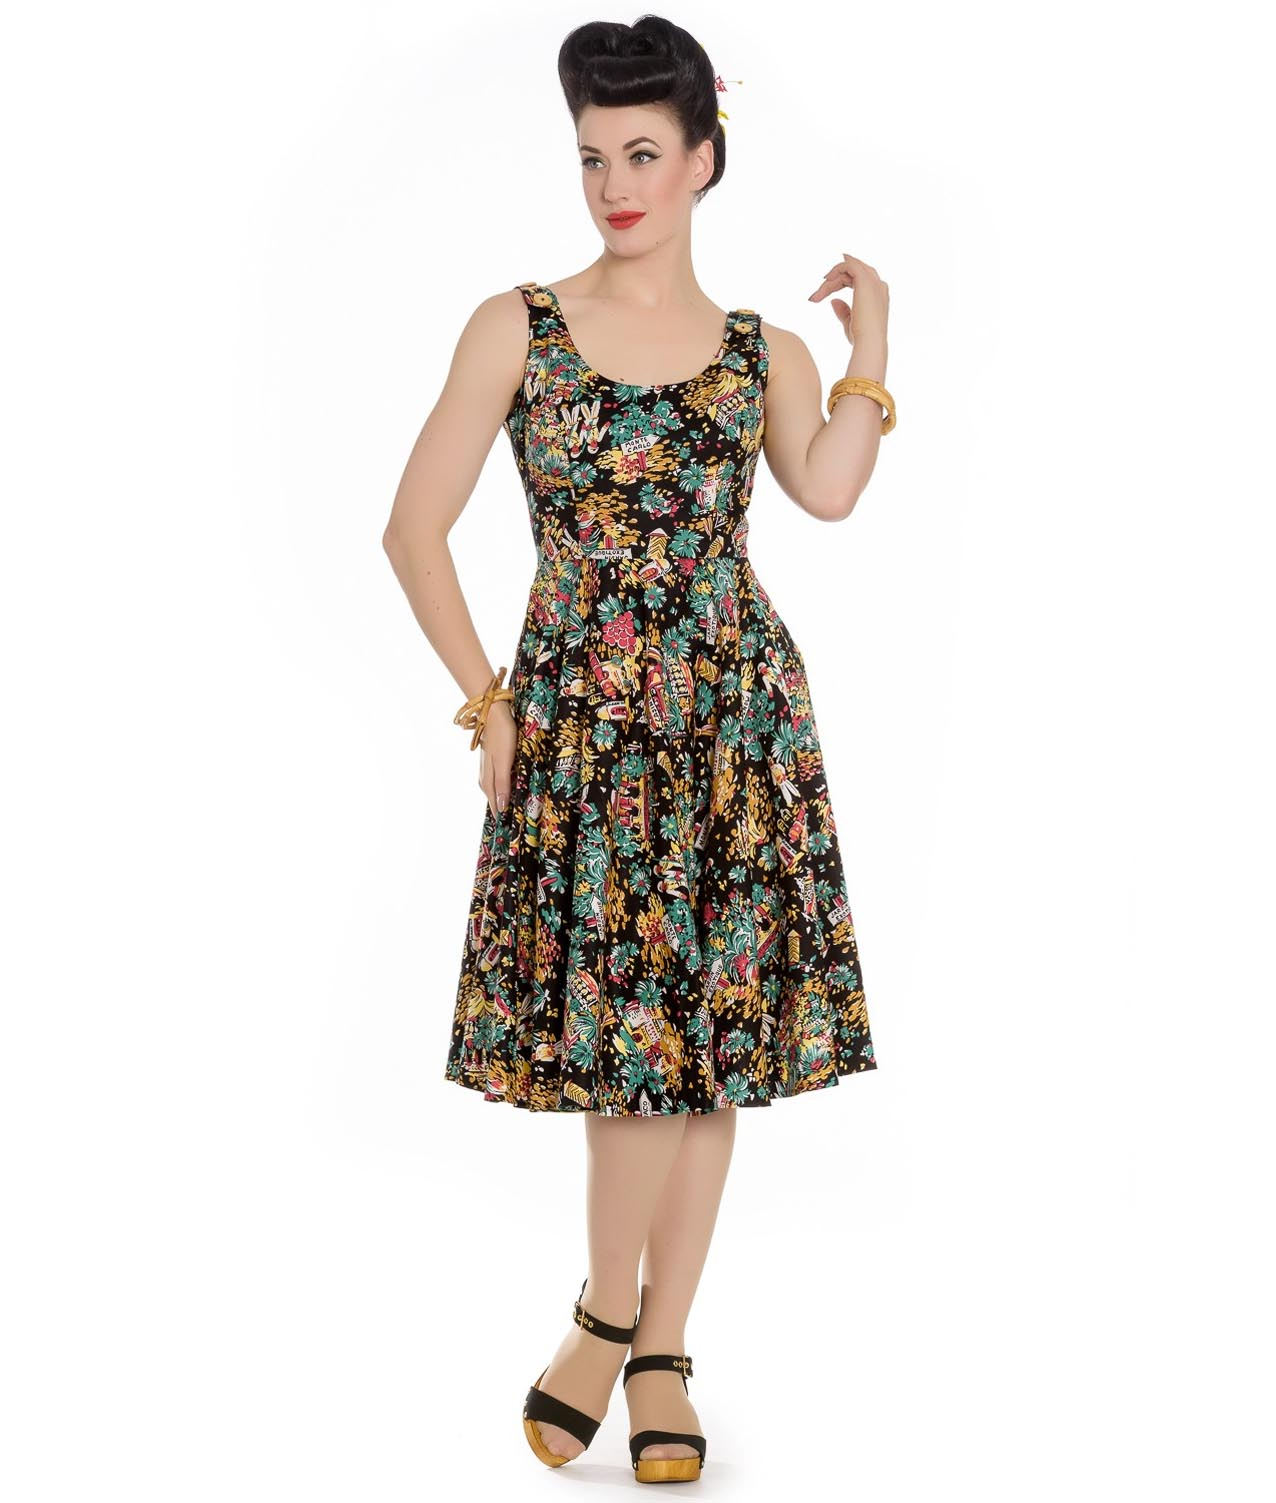 Hell-Bunny-Summer-50s-Black-Dress-MONTE-CARLO-Tropical-Holiday-All-Sizes thumbnail 7